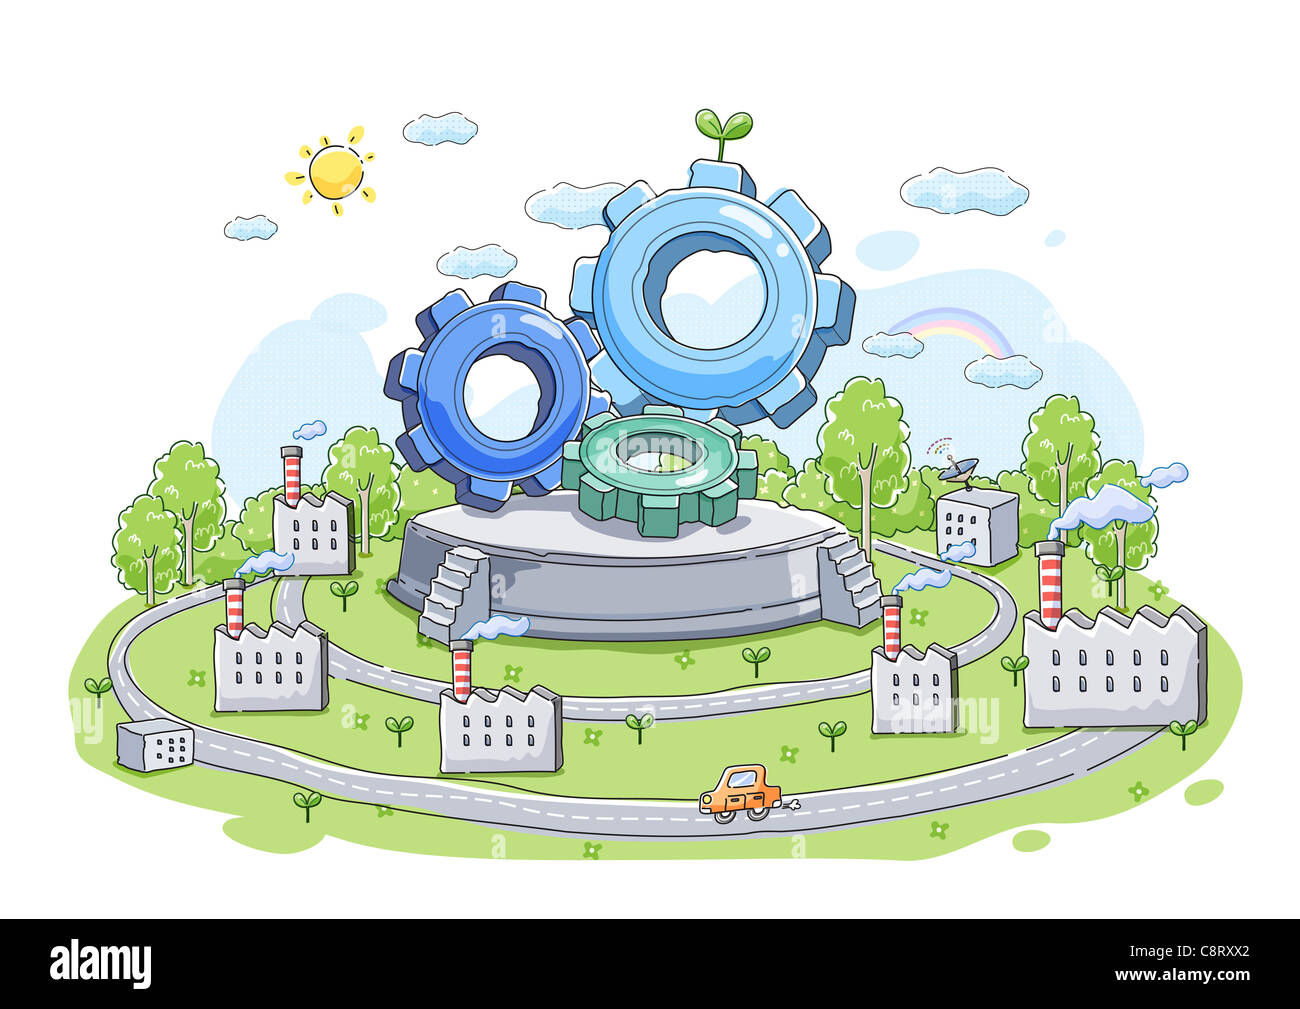 Illustration of gears with factory and cars in background - Stock Image